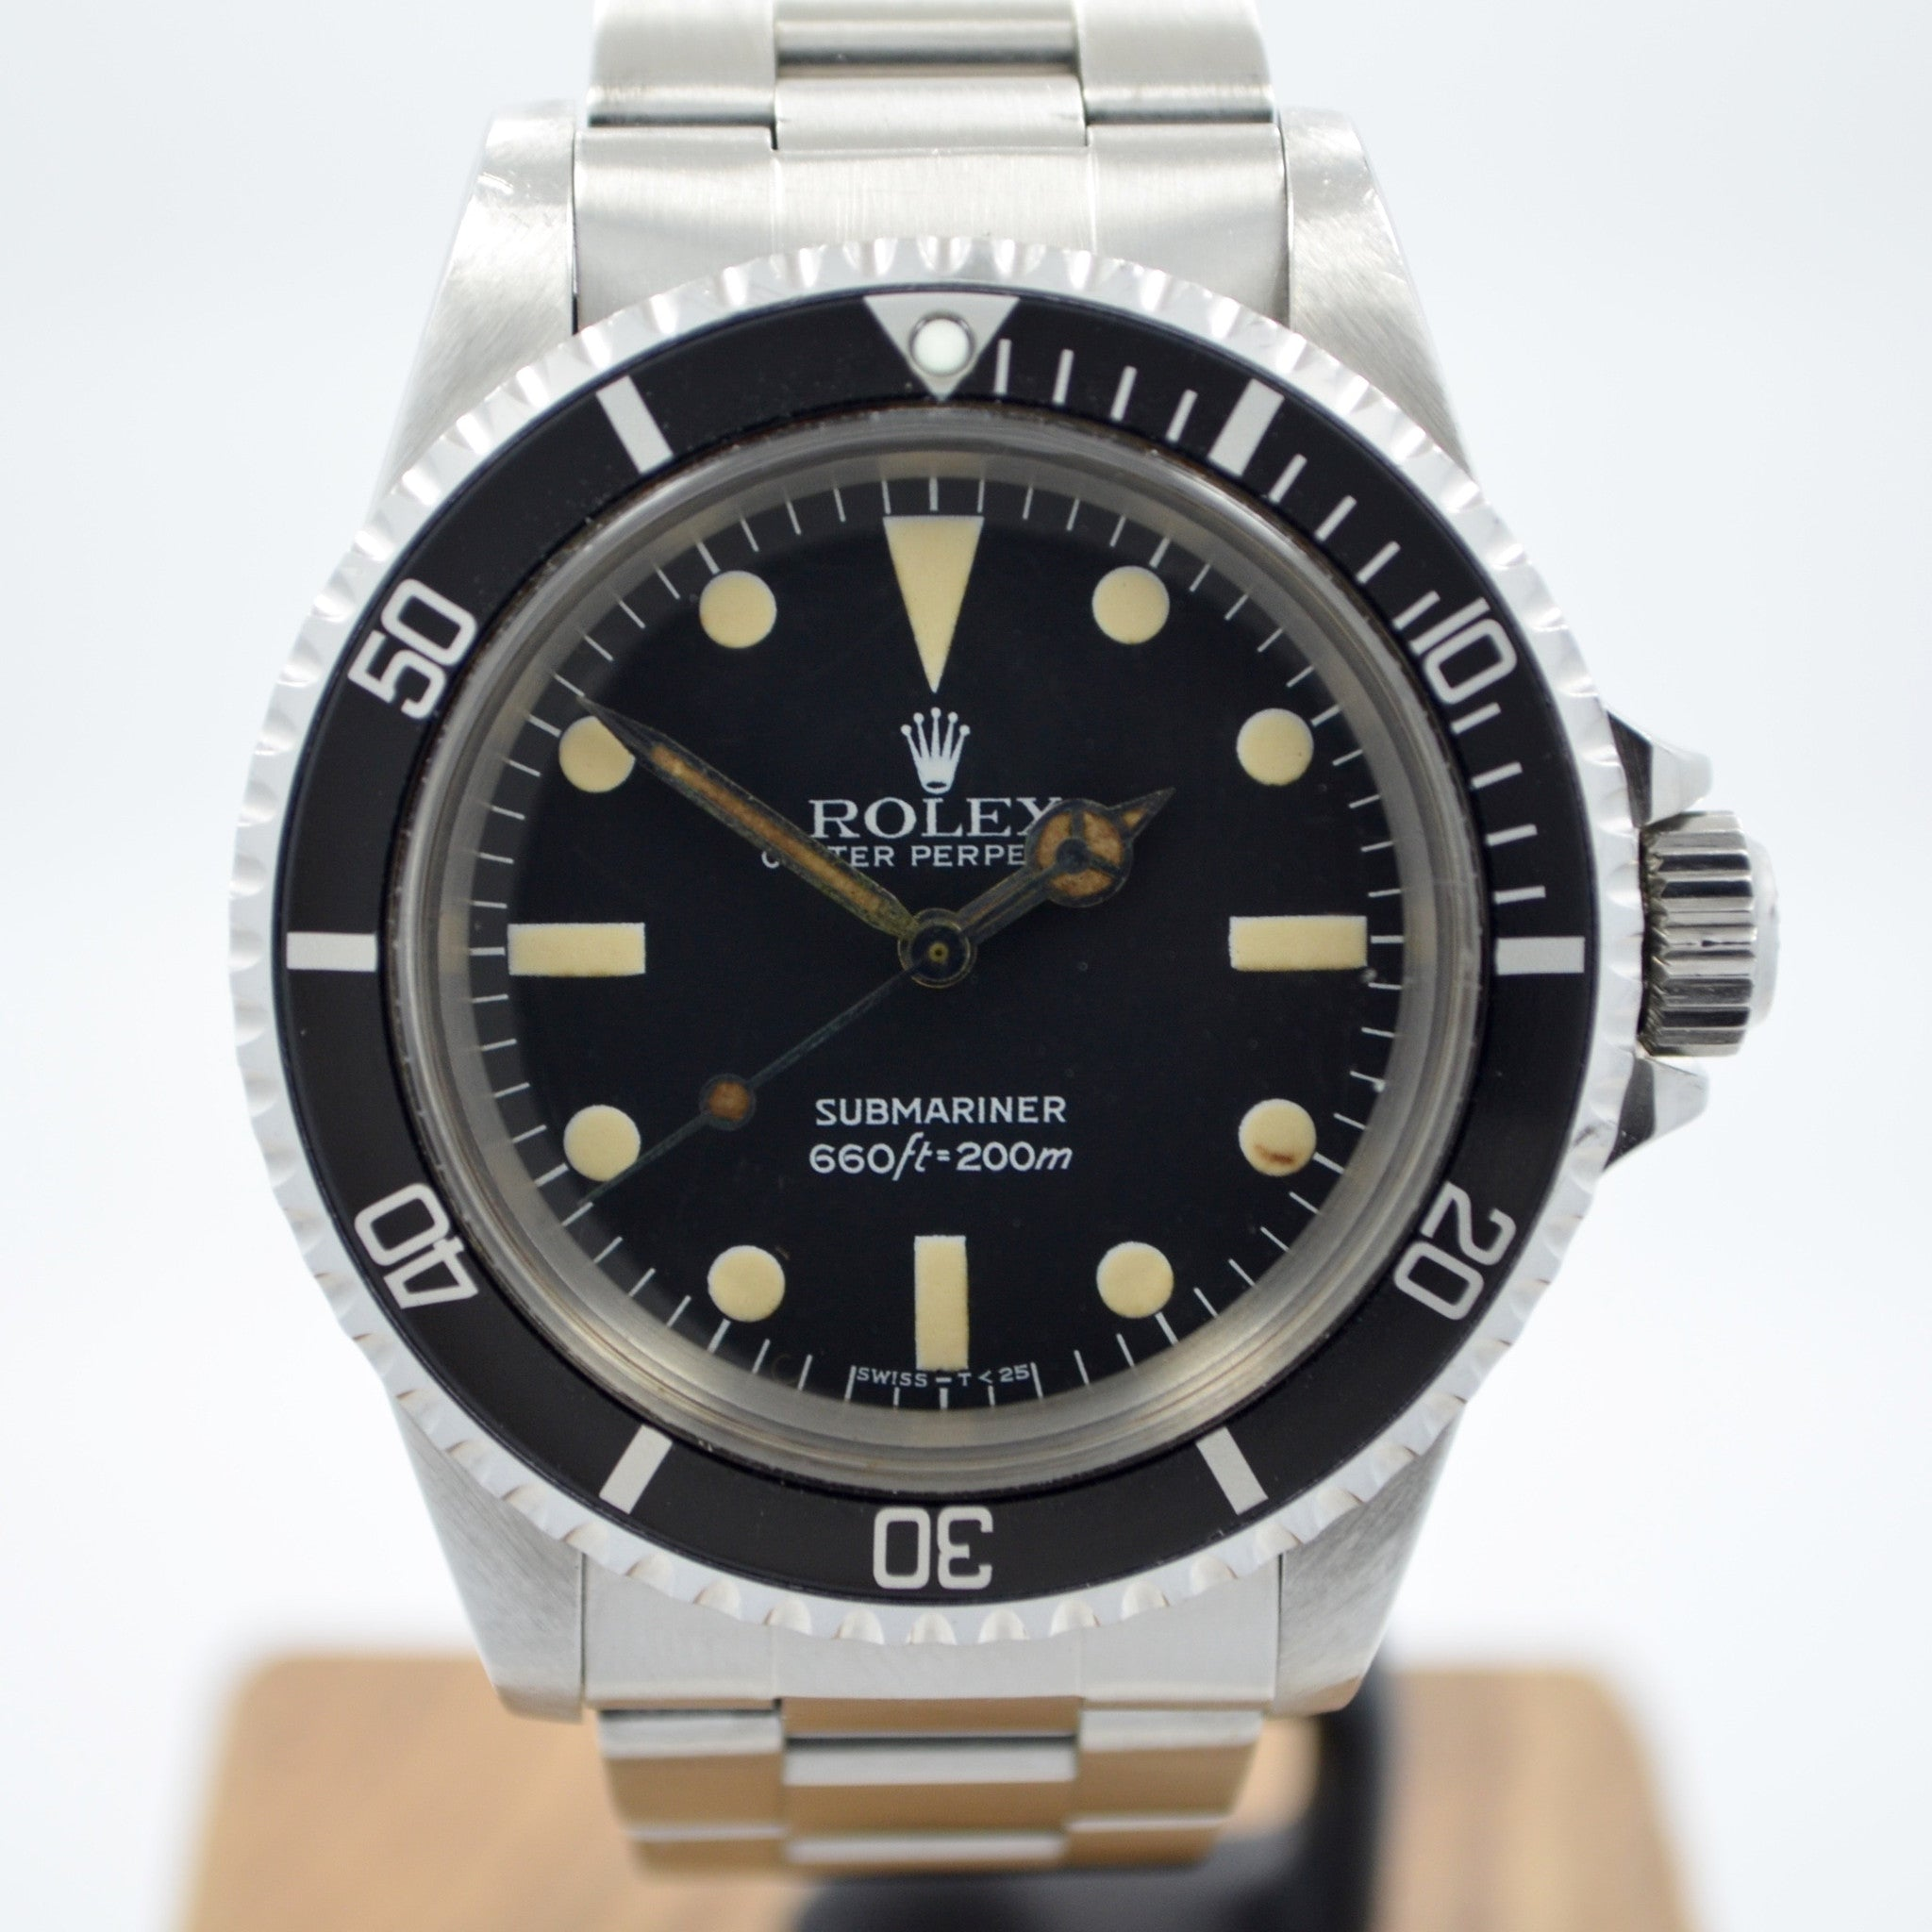 Vintage Rolex 5513 Submariner Stainless Steel 7.2 Mil Wristwatch 1981 Box Papers